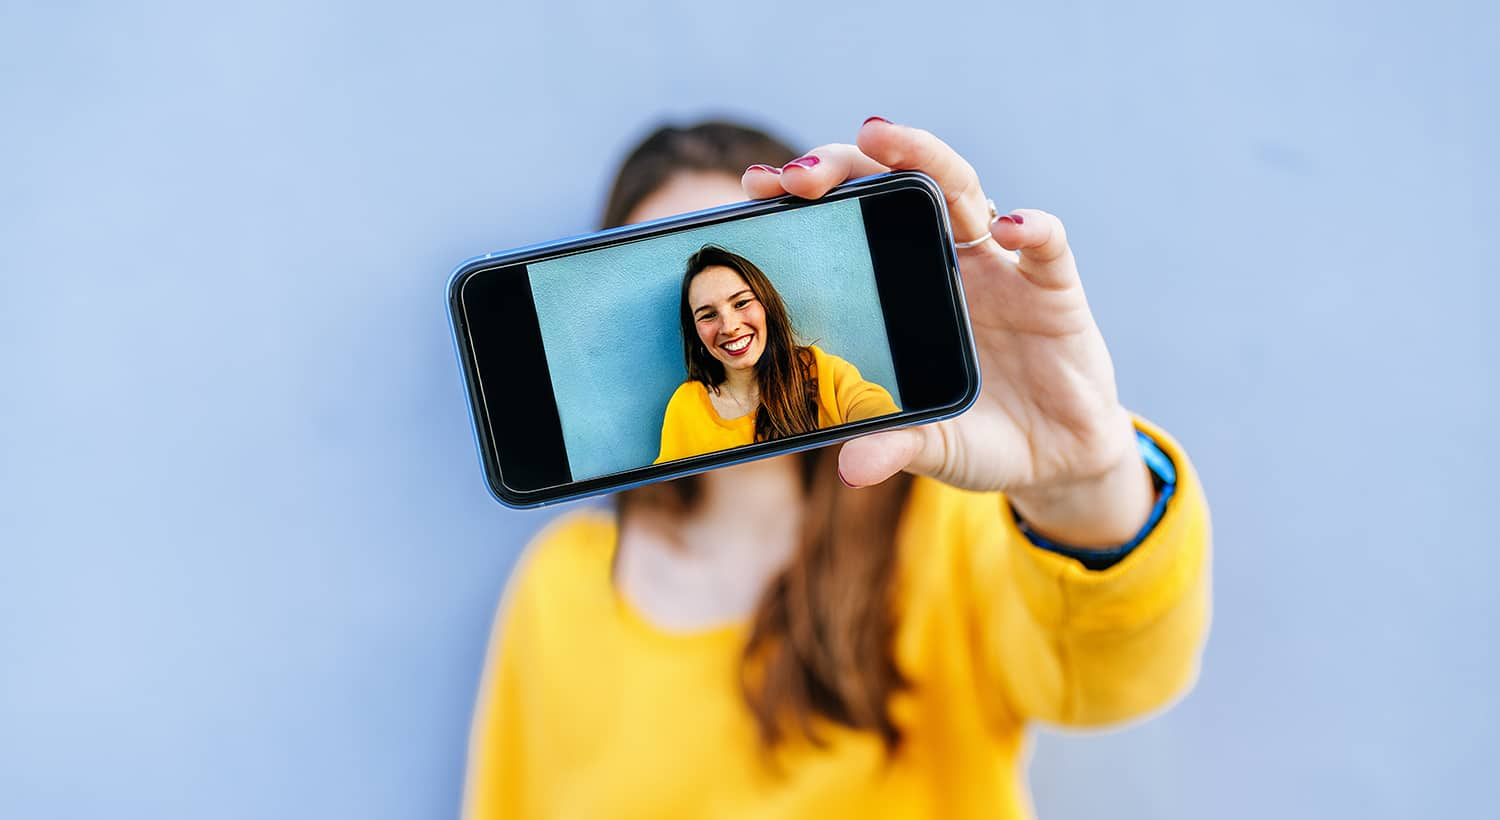 Video is the future of real estate marketing